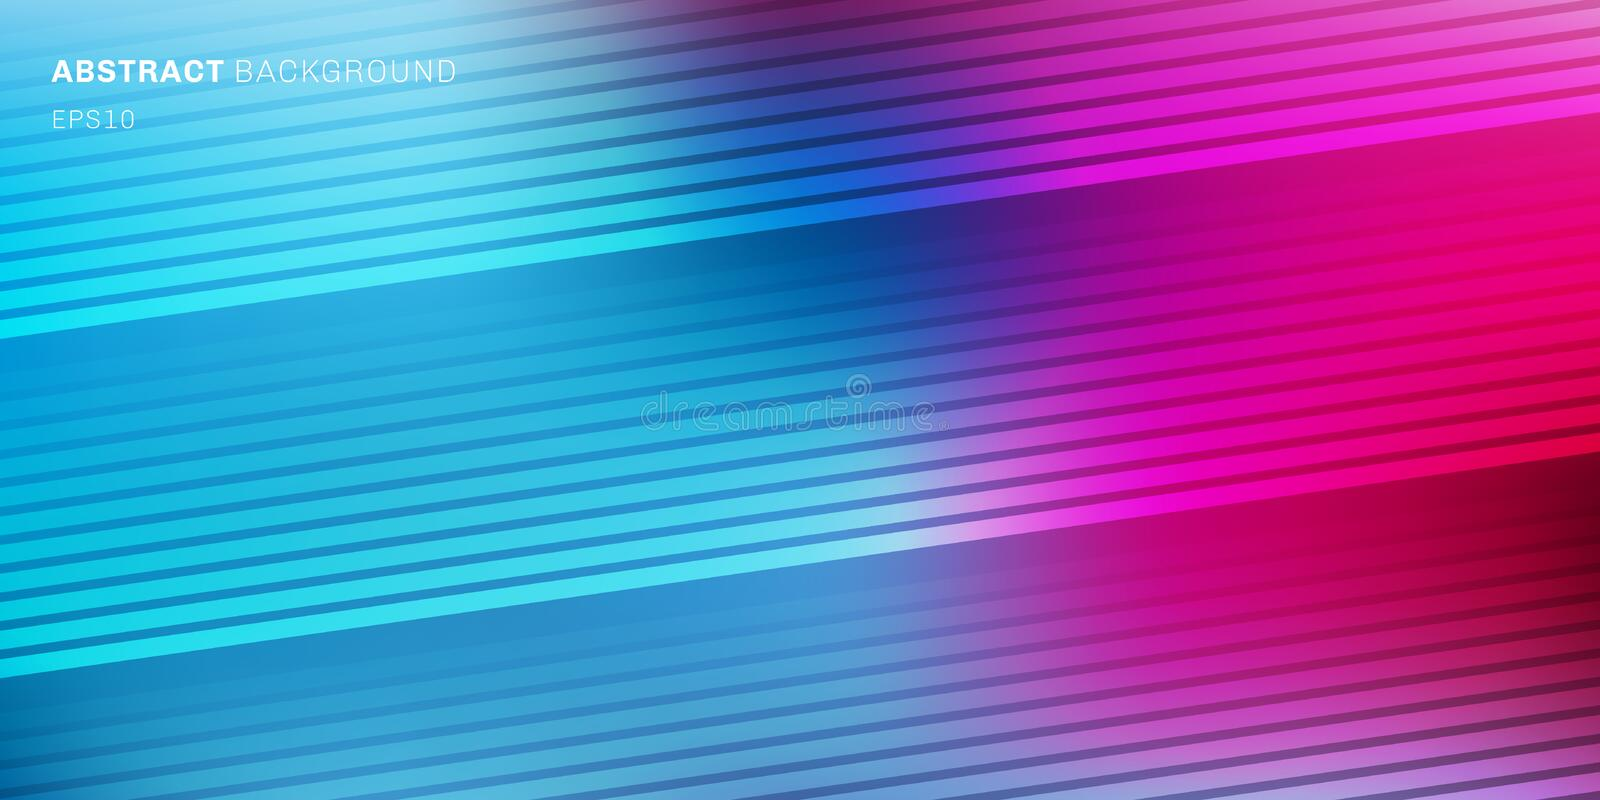 Abstract blue, purple, pink vibrant color blurred background with diagonal lines pattern texture. Soft dark to light gradient. Backdrop with place for text royalty free illustration